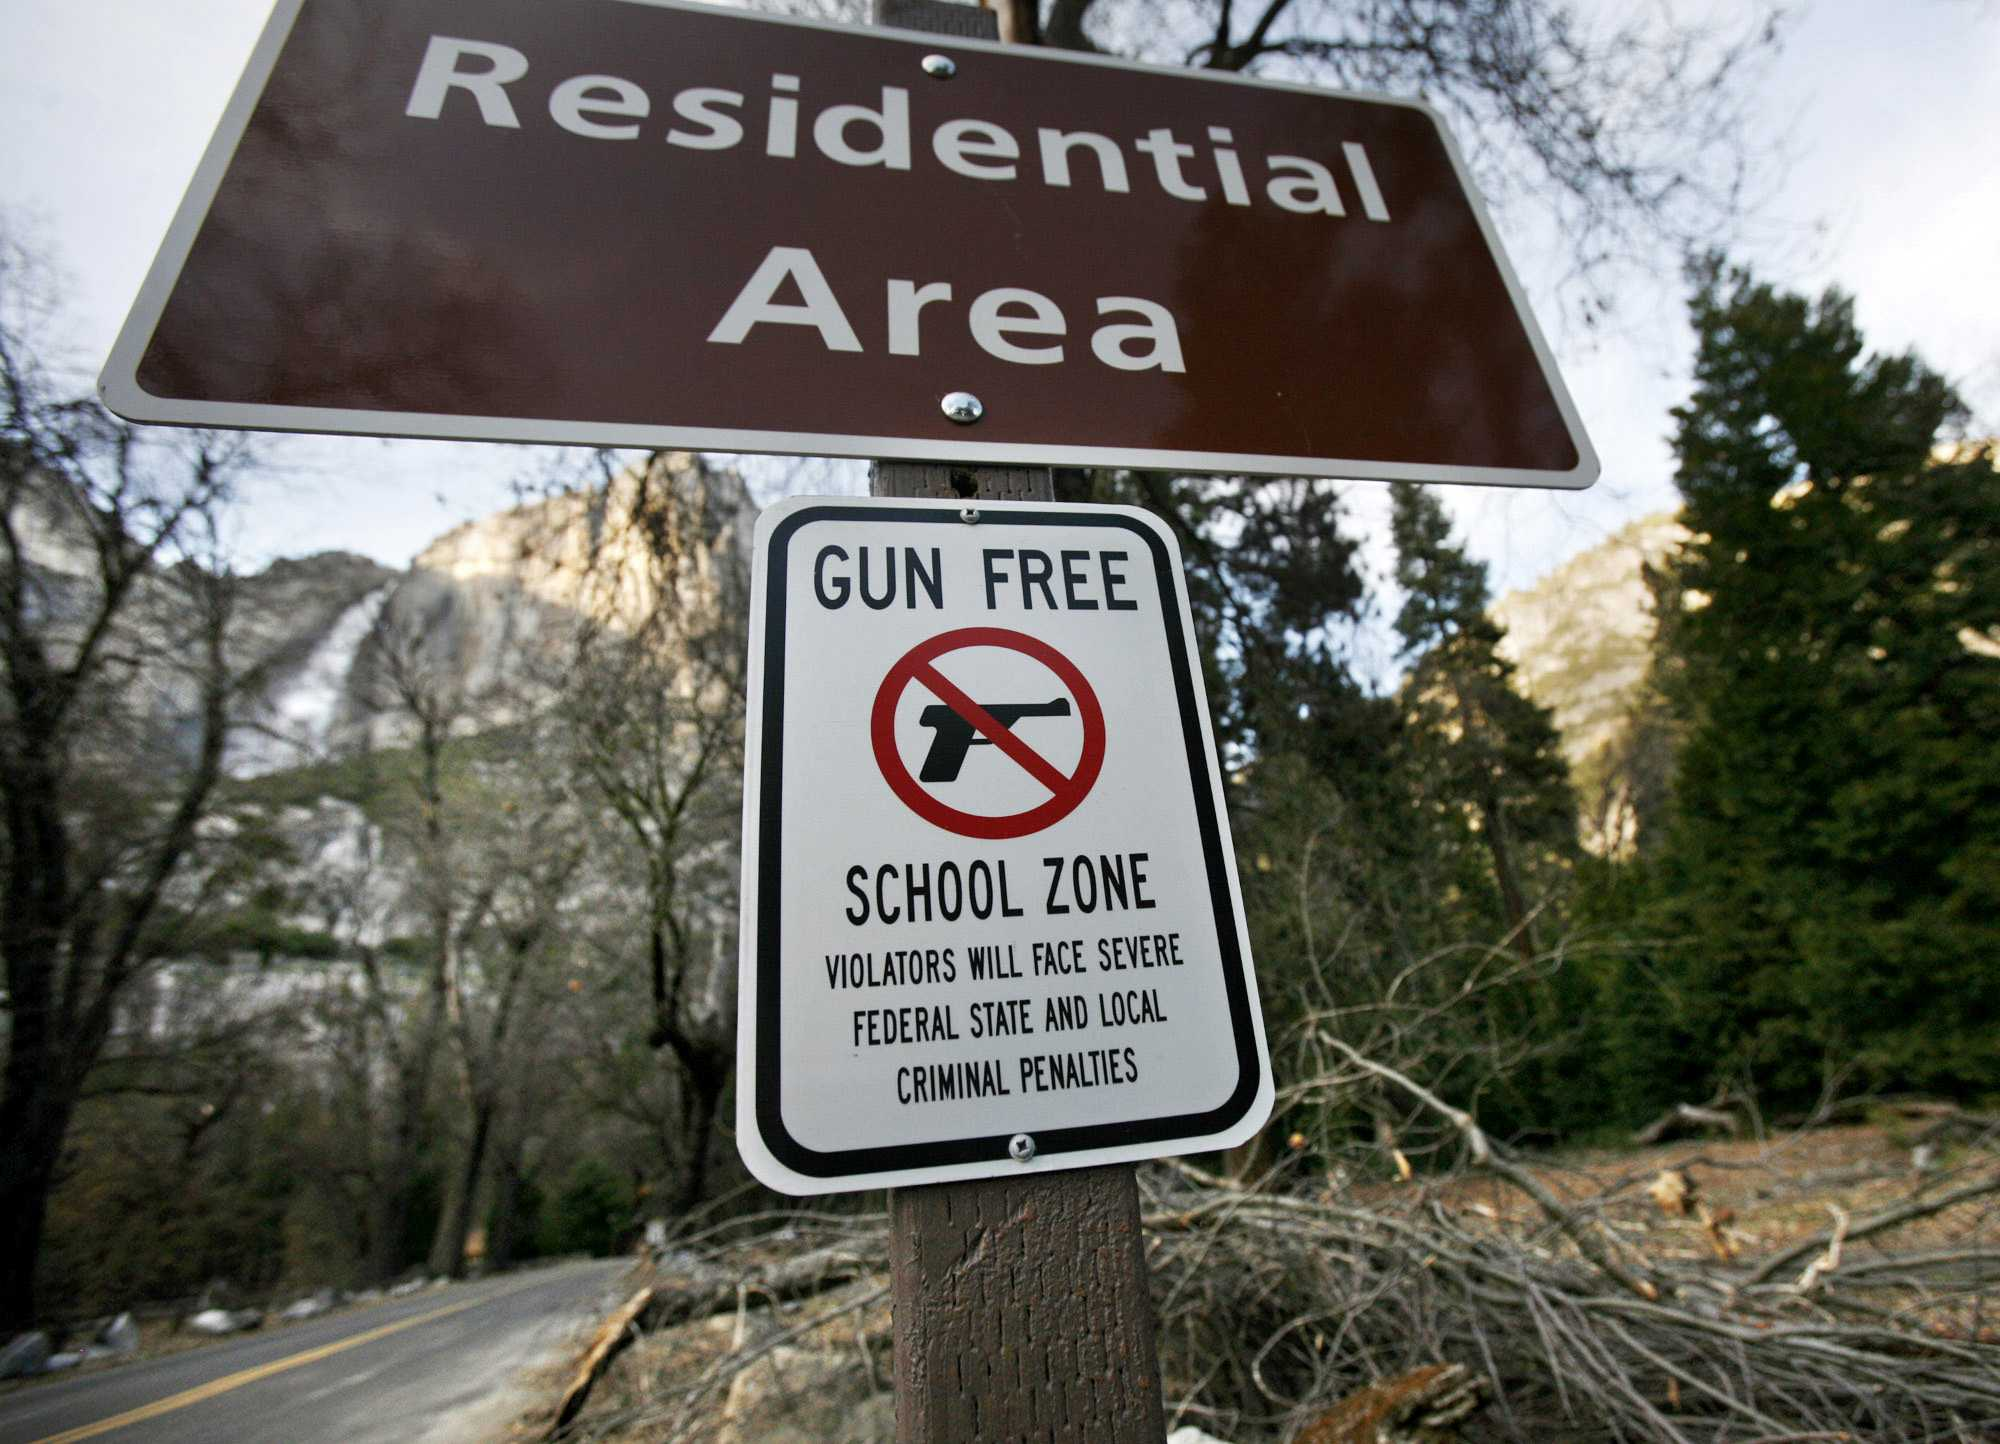 An added sign designating the school in Yosemite Valley a gun-free zone is posted below the residential sign near administrative offices in Yosemite Valley, March 17, 2010. (Eric Paul Zamora/Fresno Bee/MCT)